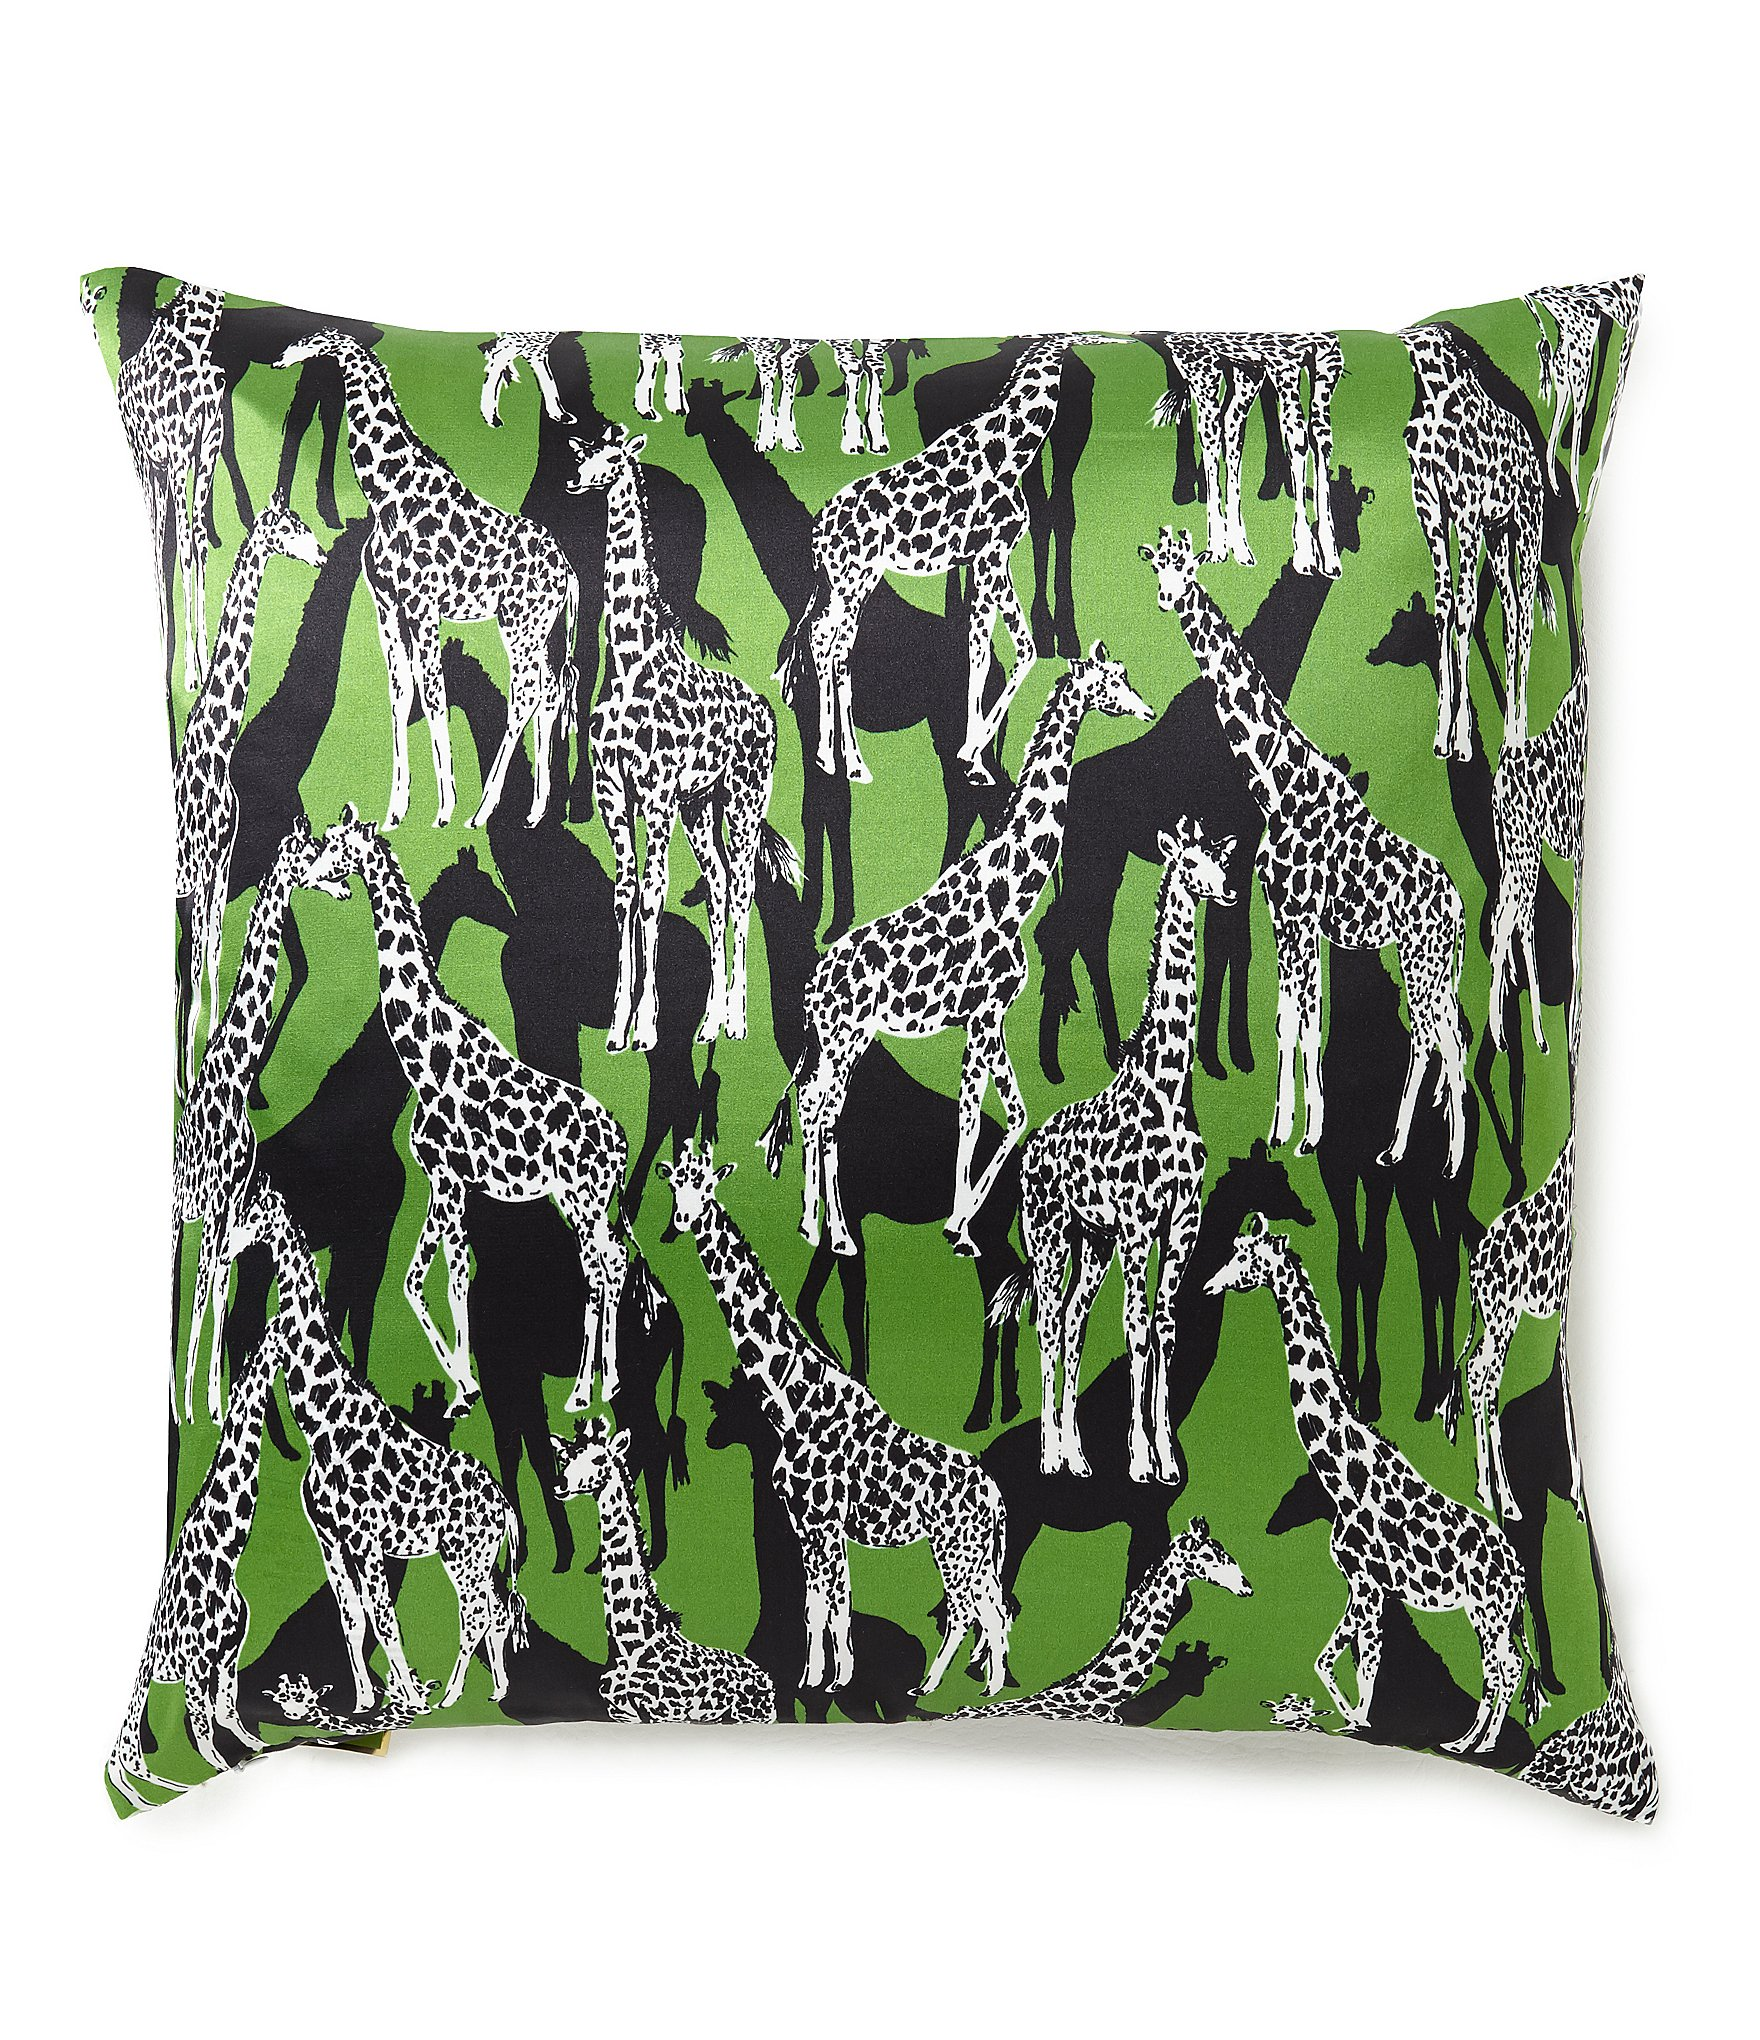 kate spade new york Giraffe Silk & Cotton Square Feather Pillow Dillards